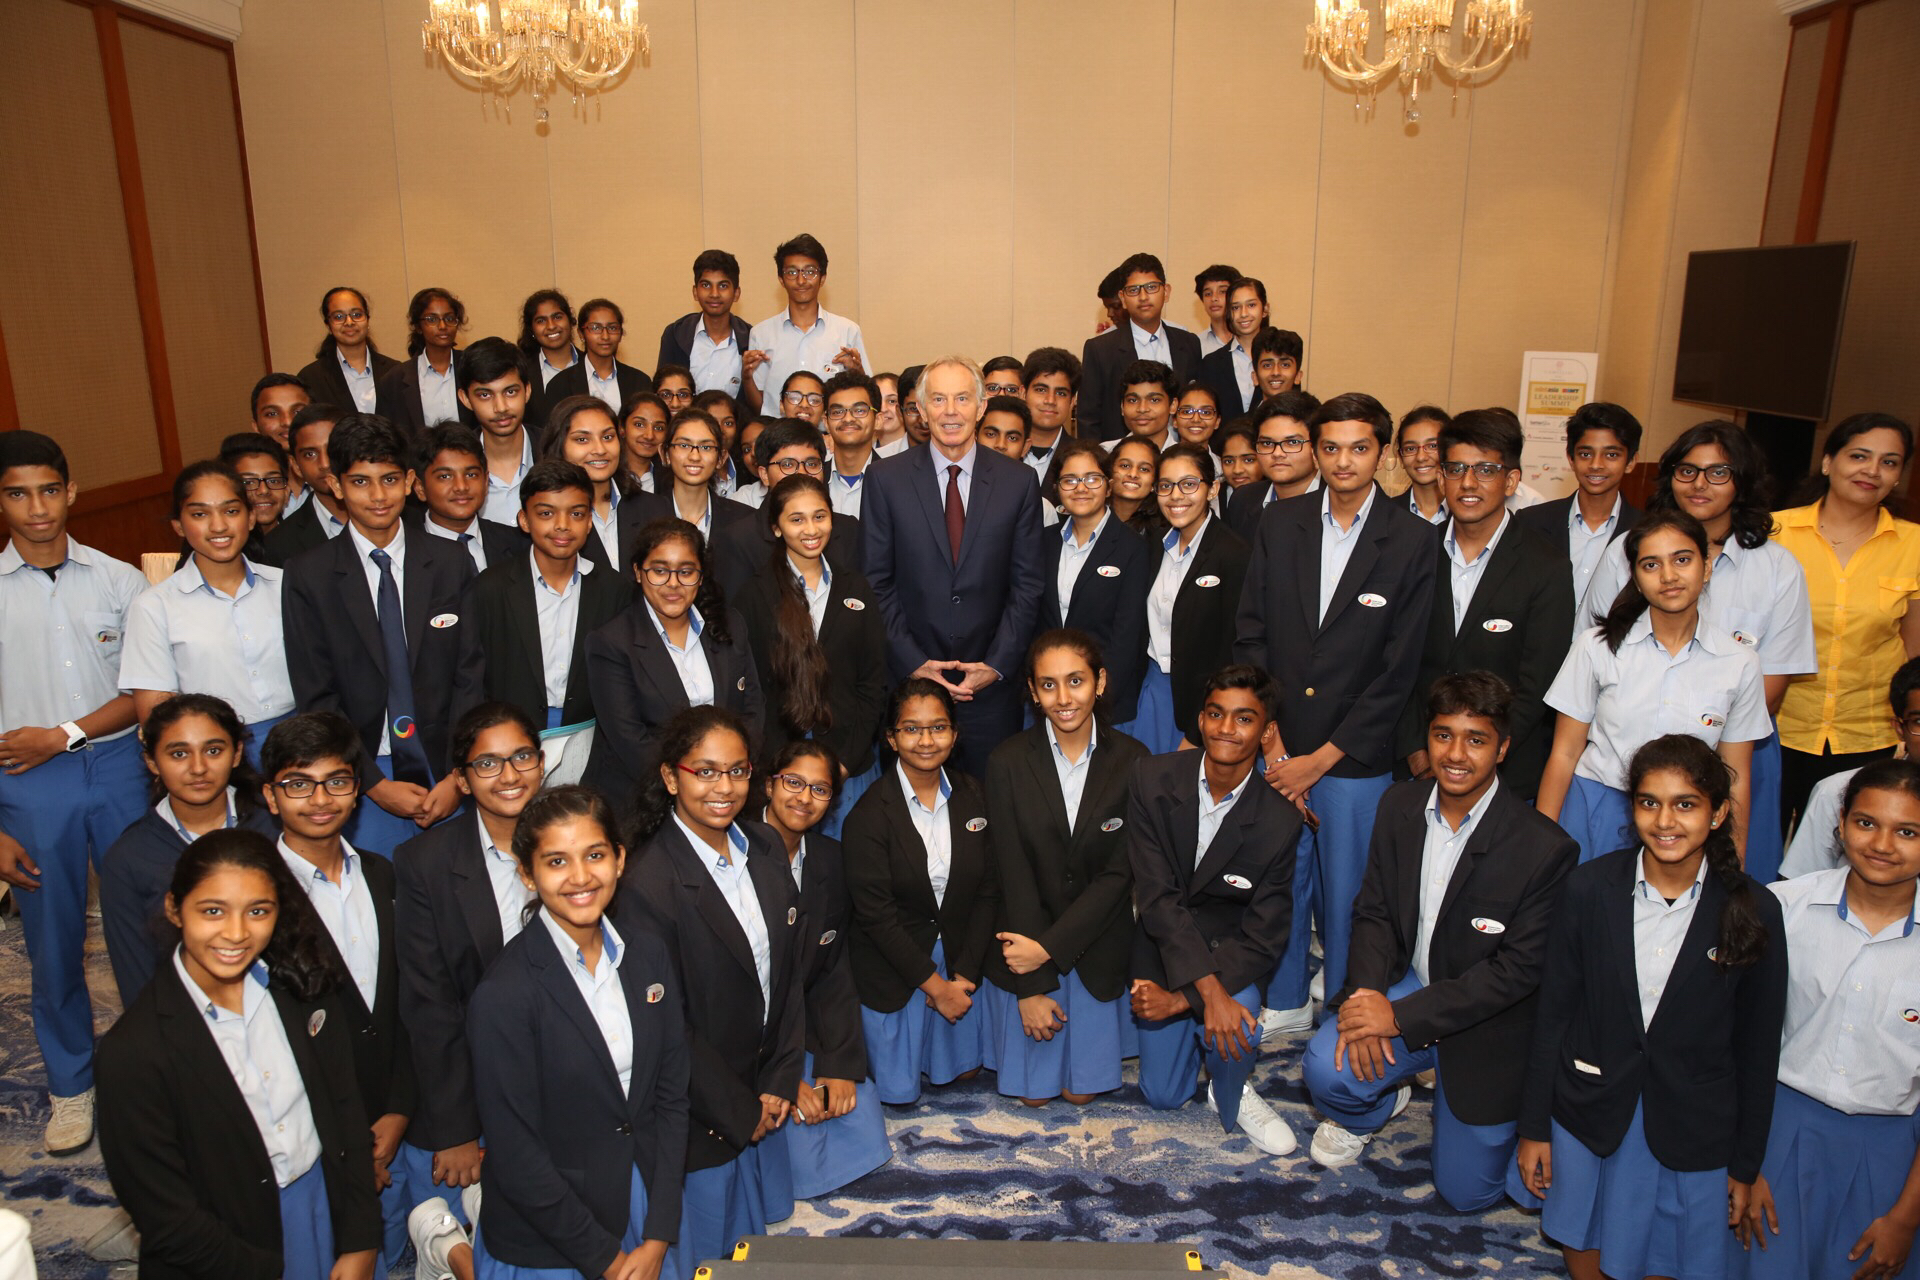 Tony Blair (centre) interacting with GIIS students.